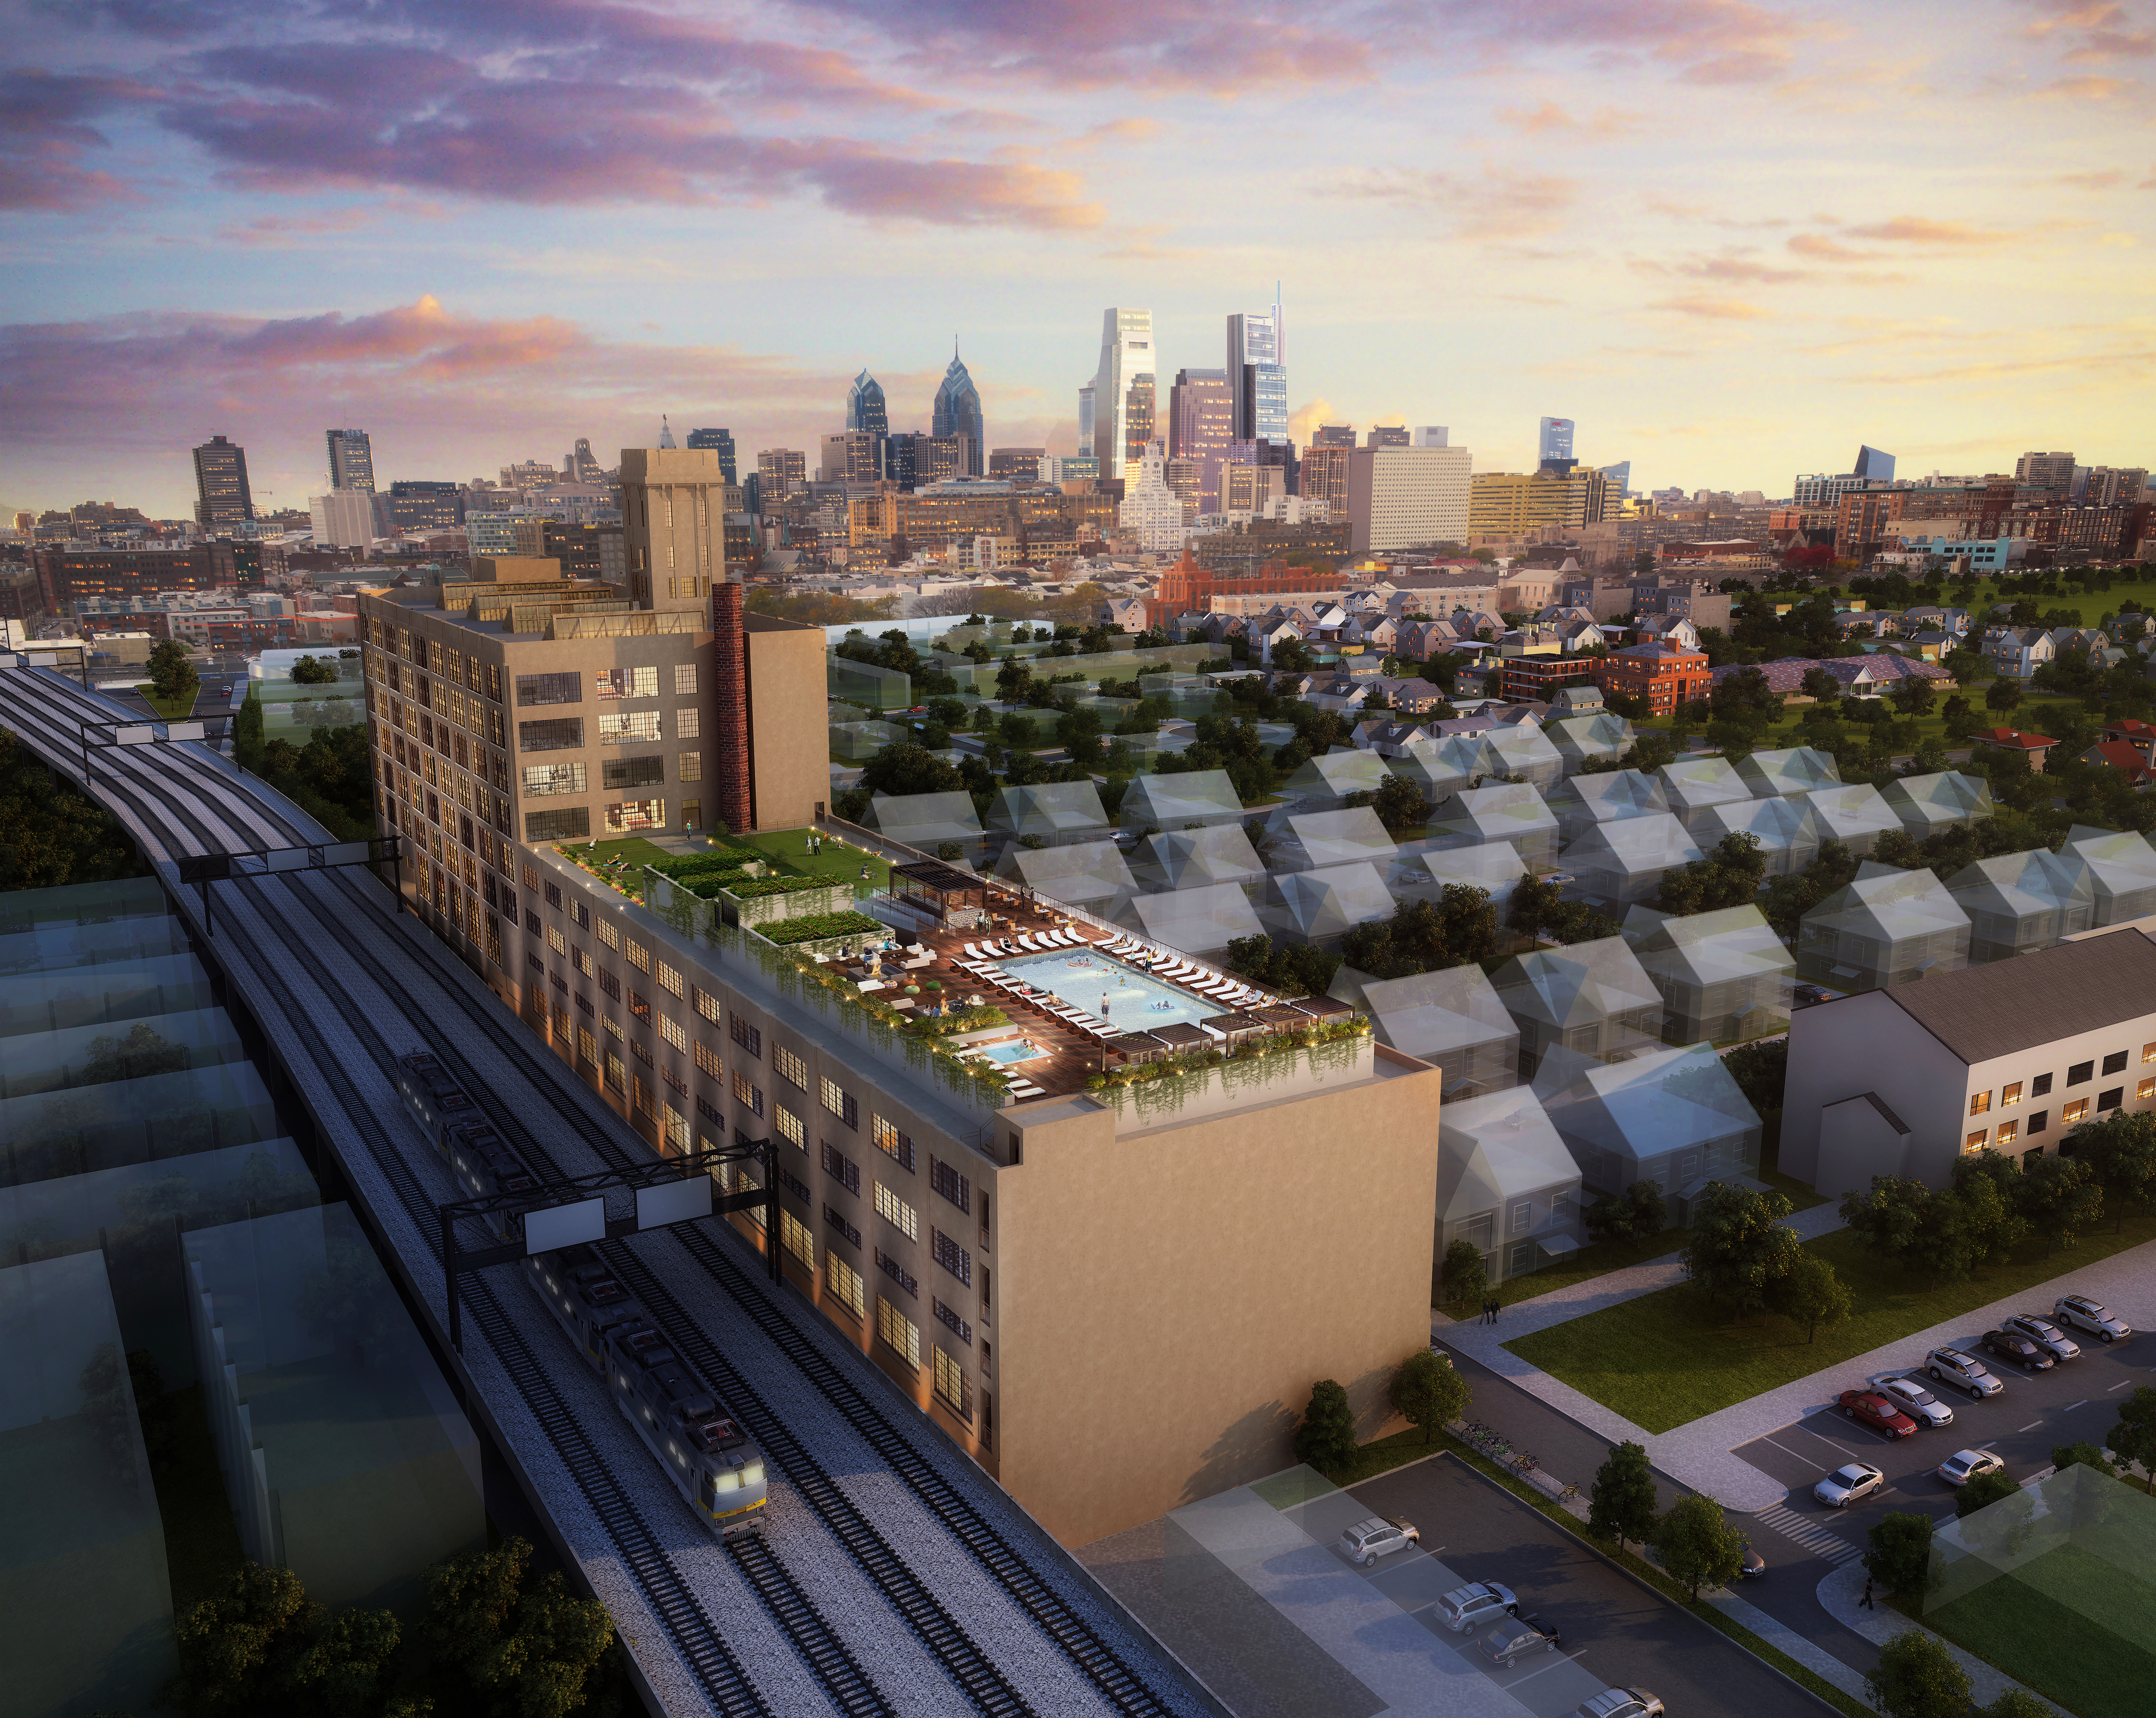 An aerial view of the proposed conversion of an old Quaker warehouse in Philly into apartments with a roof deck and pool.